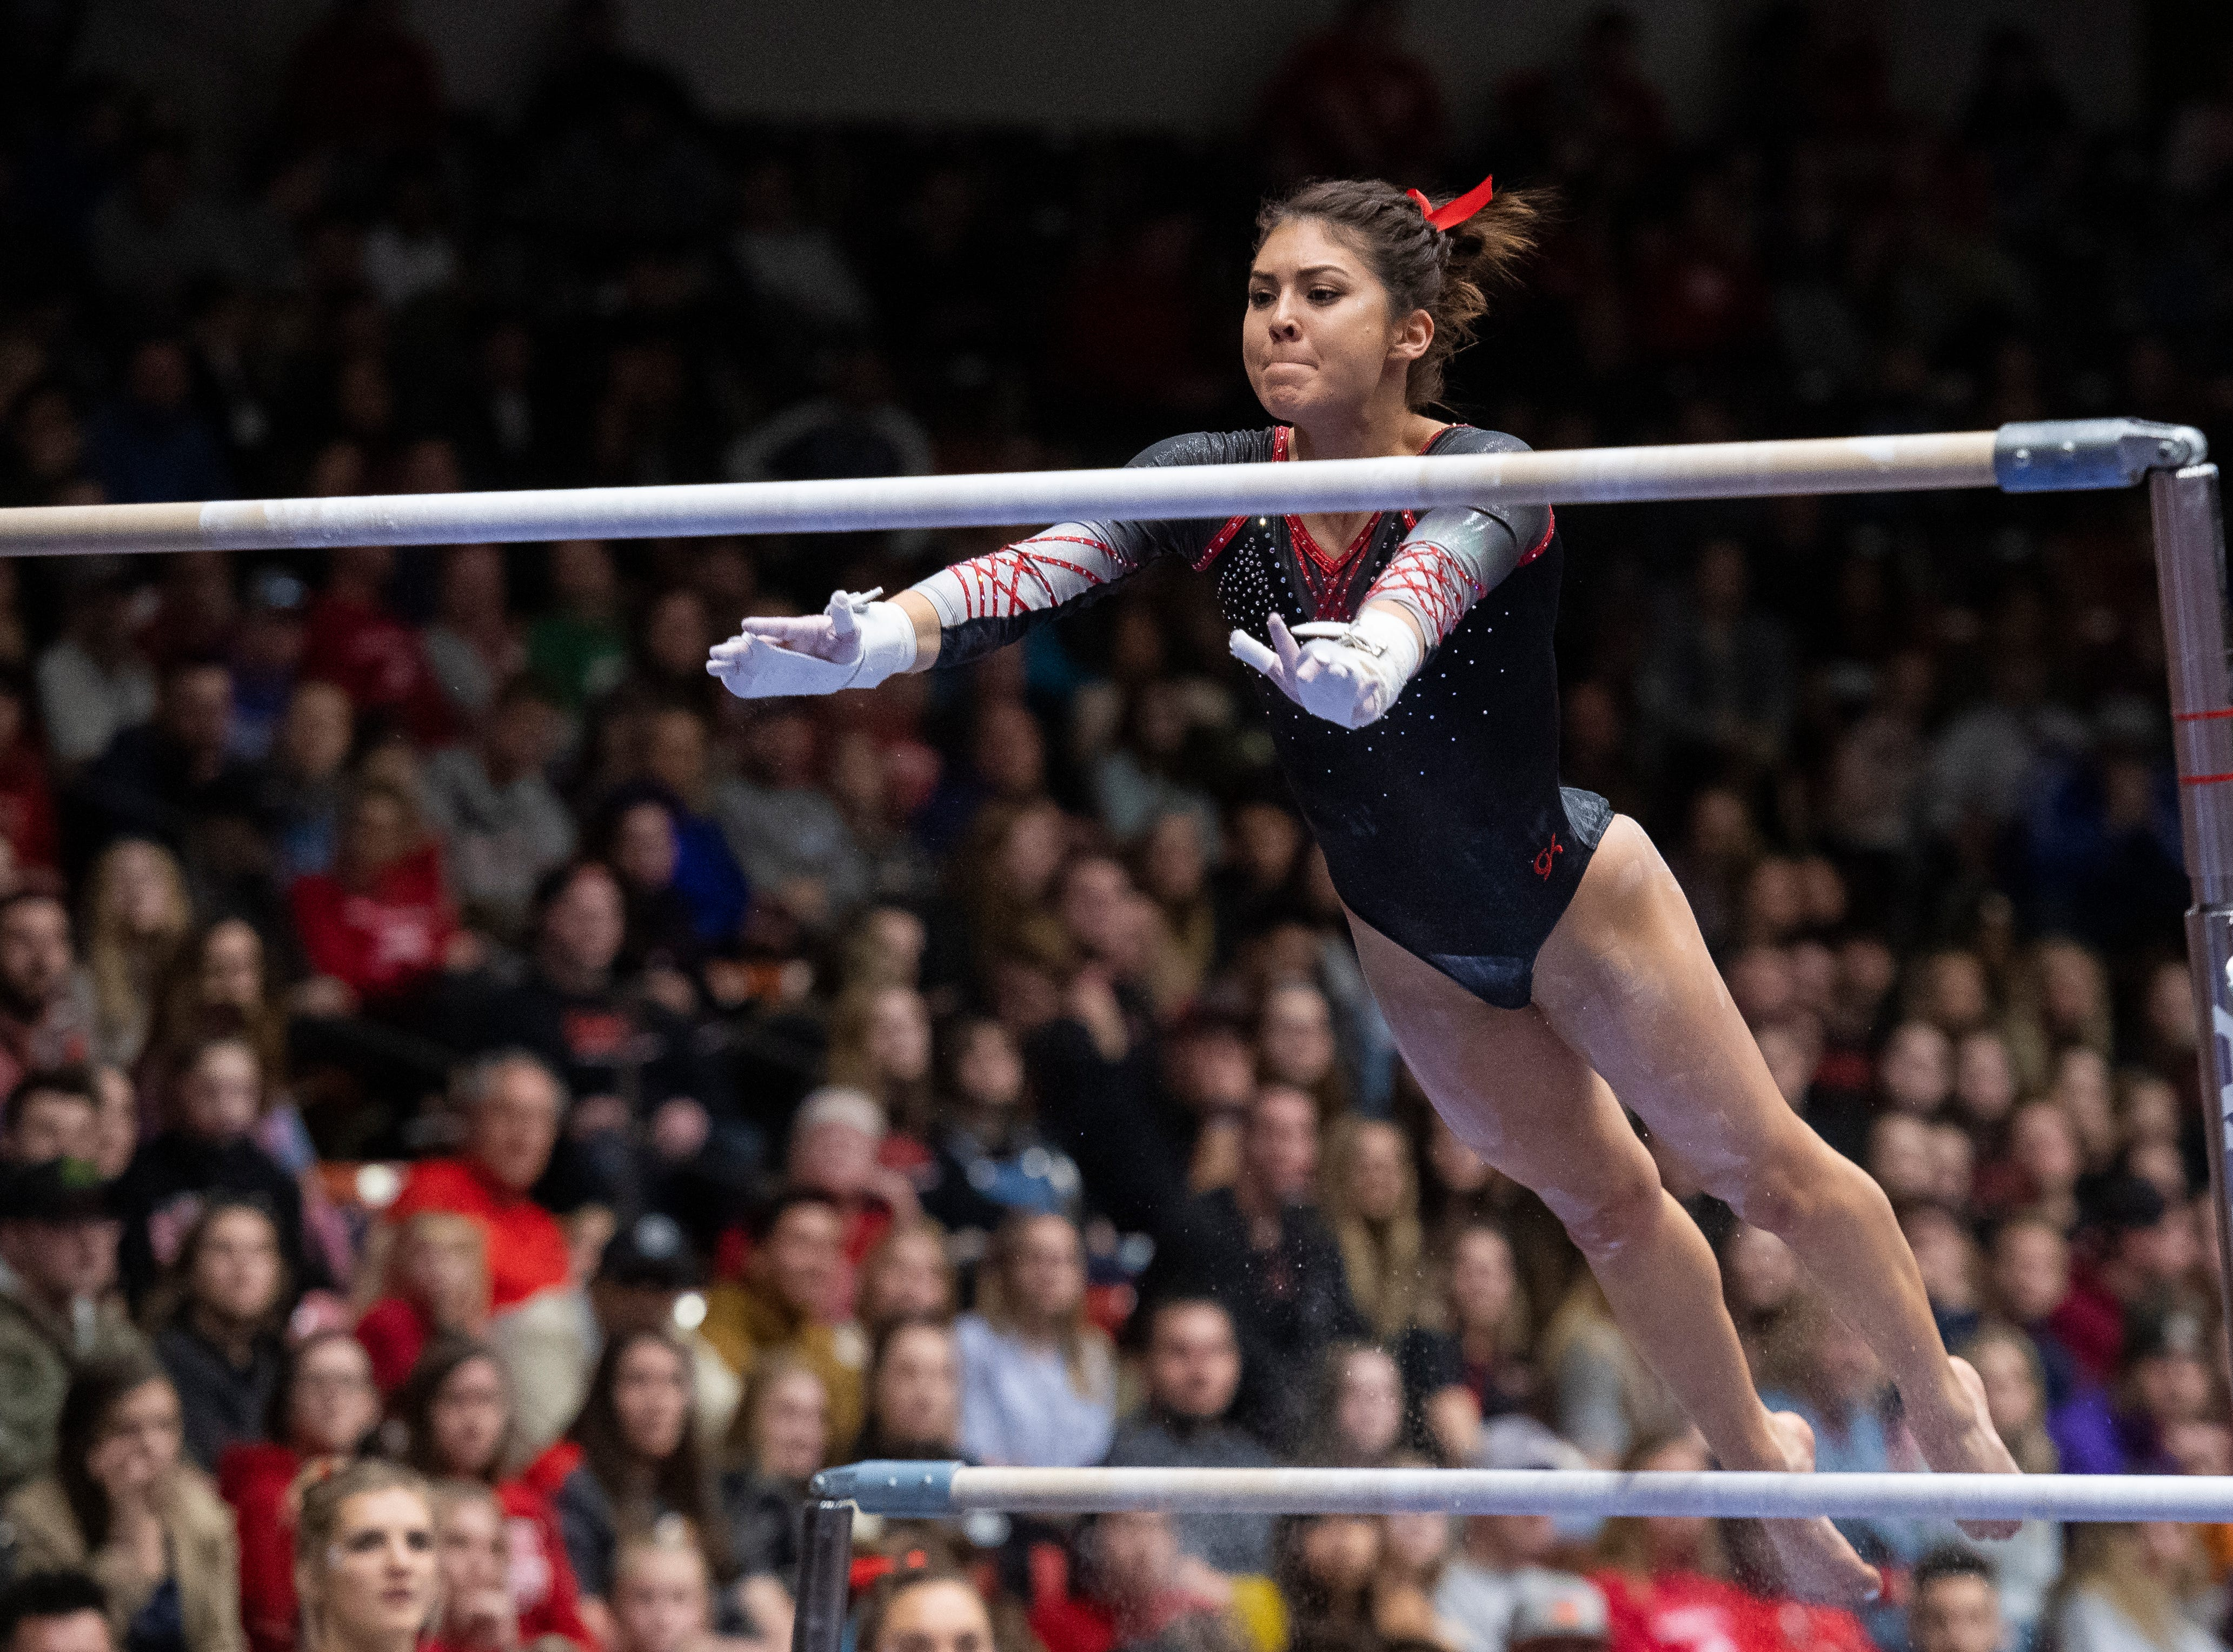 Southern Utah University senior Karen Gonzalez begins her routine on the uneven bars against Boise State at the America First Event Center Friday, January 18, 2019.